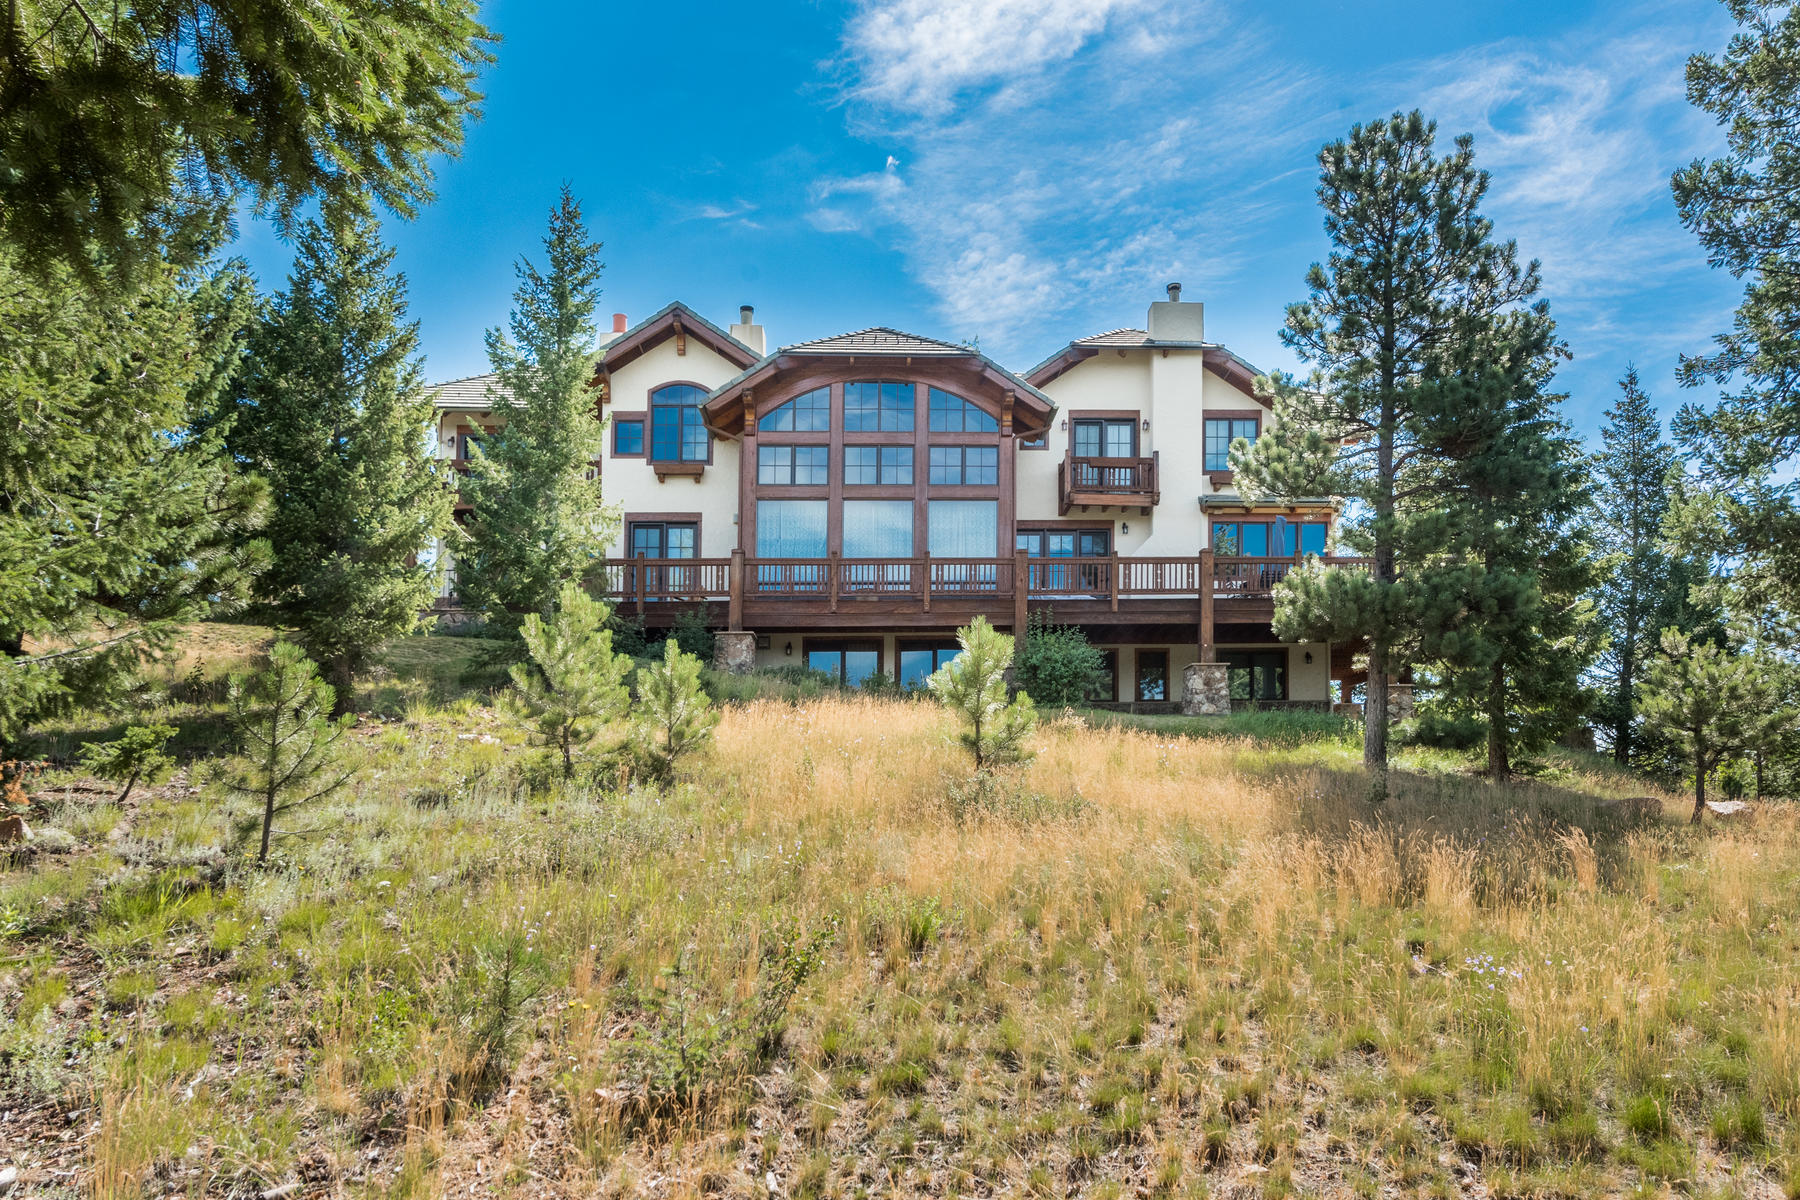 Single Family Home for Active at Aspen Meadows Ranch 35025 Buffalo Park Road Evergreen, Colorado 80439 United States